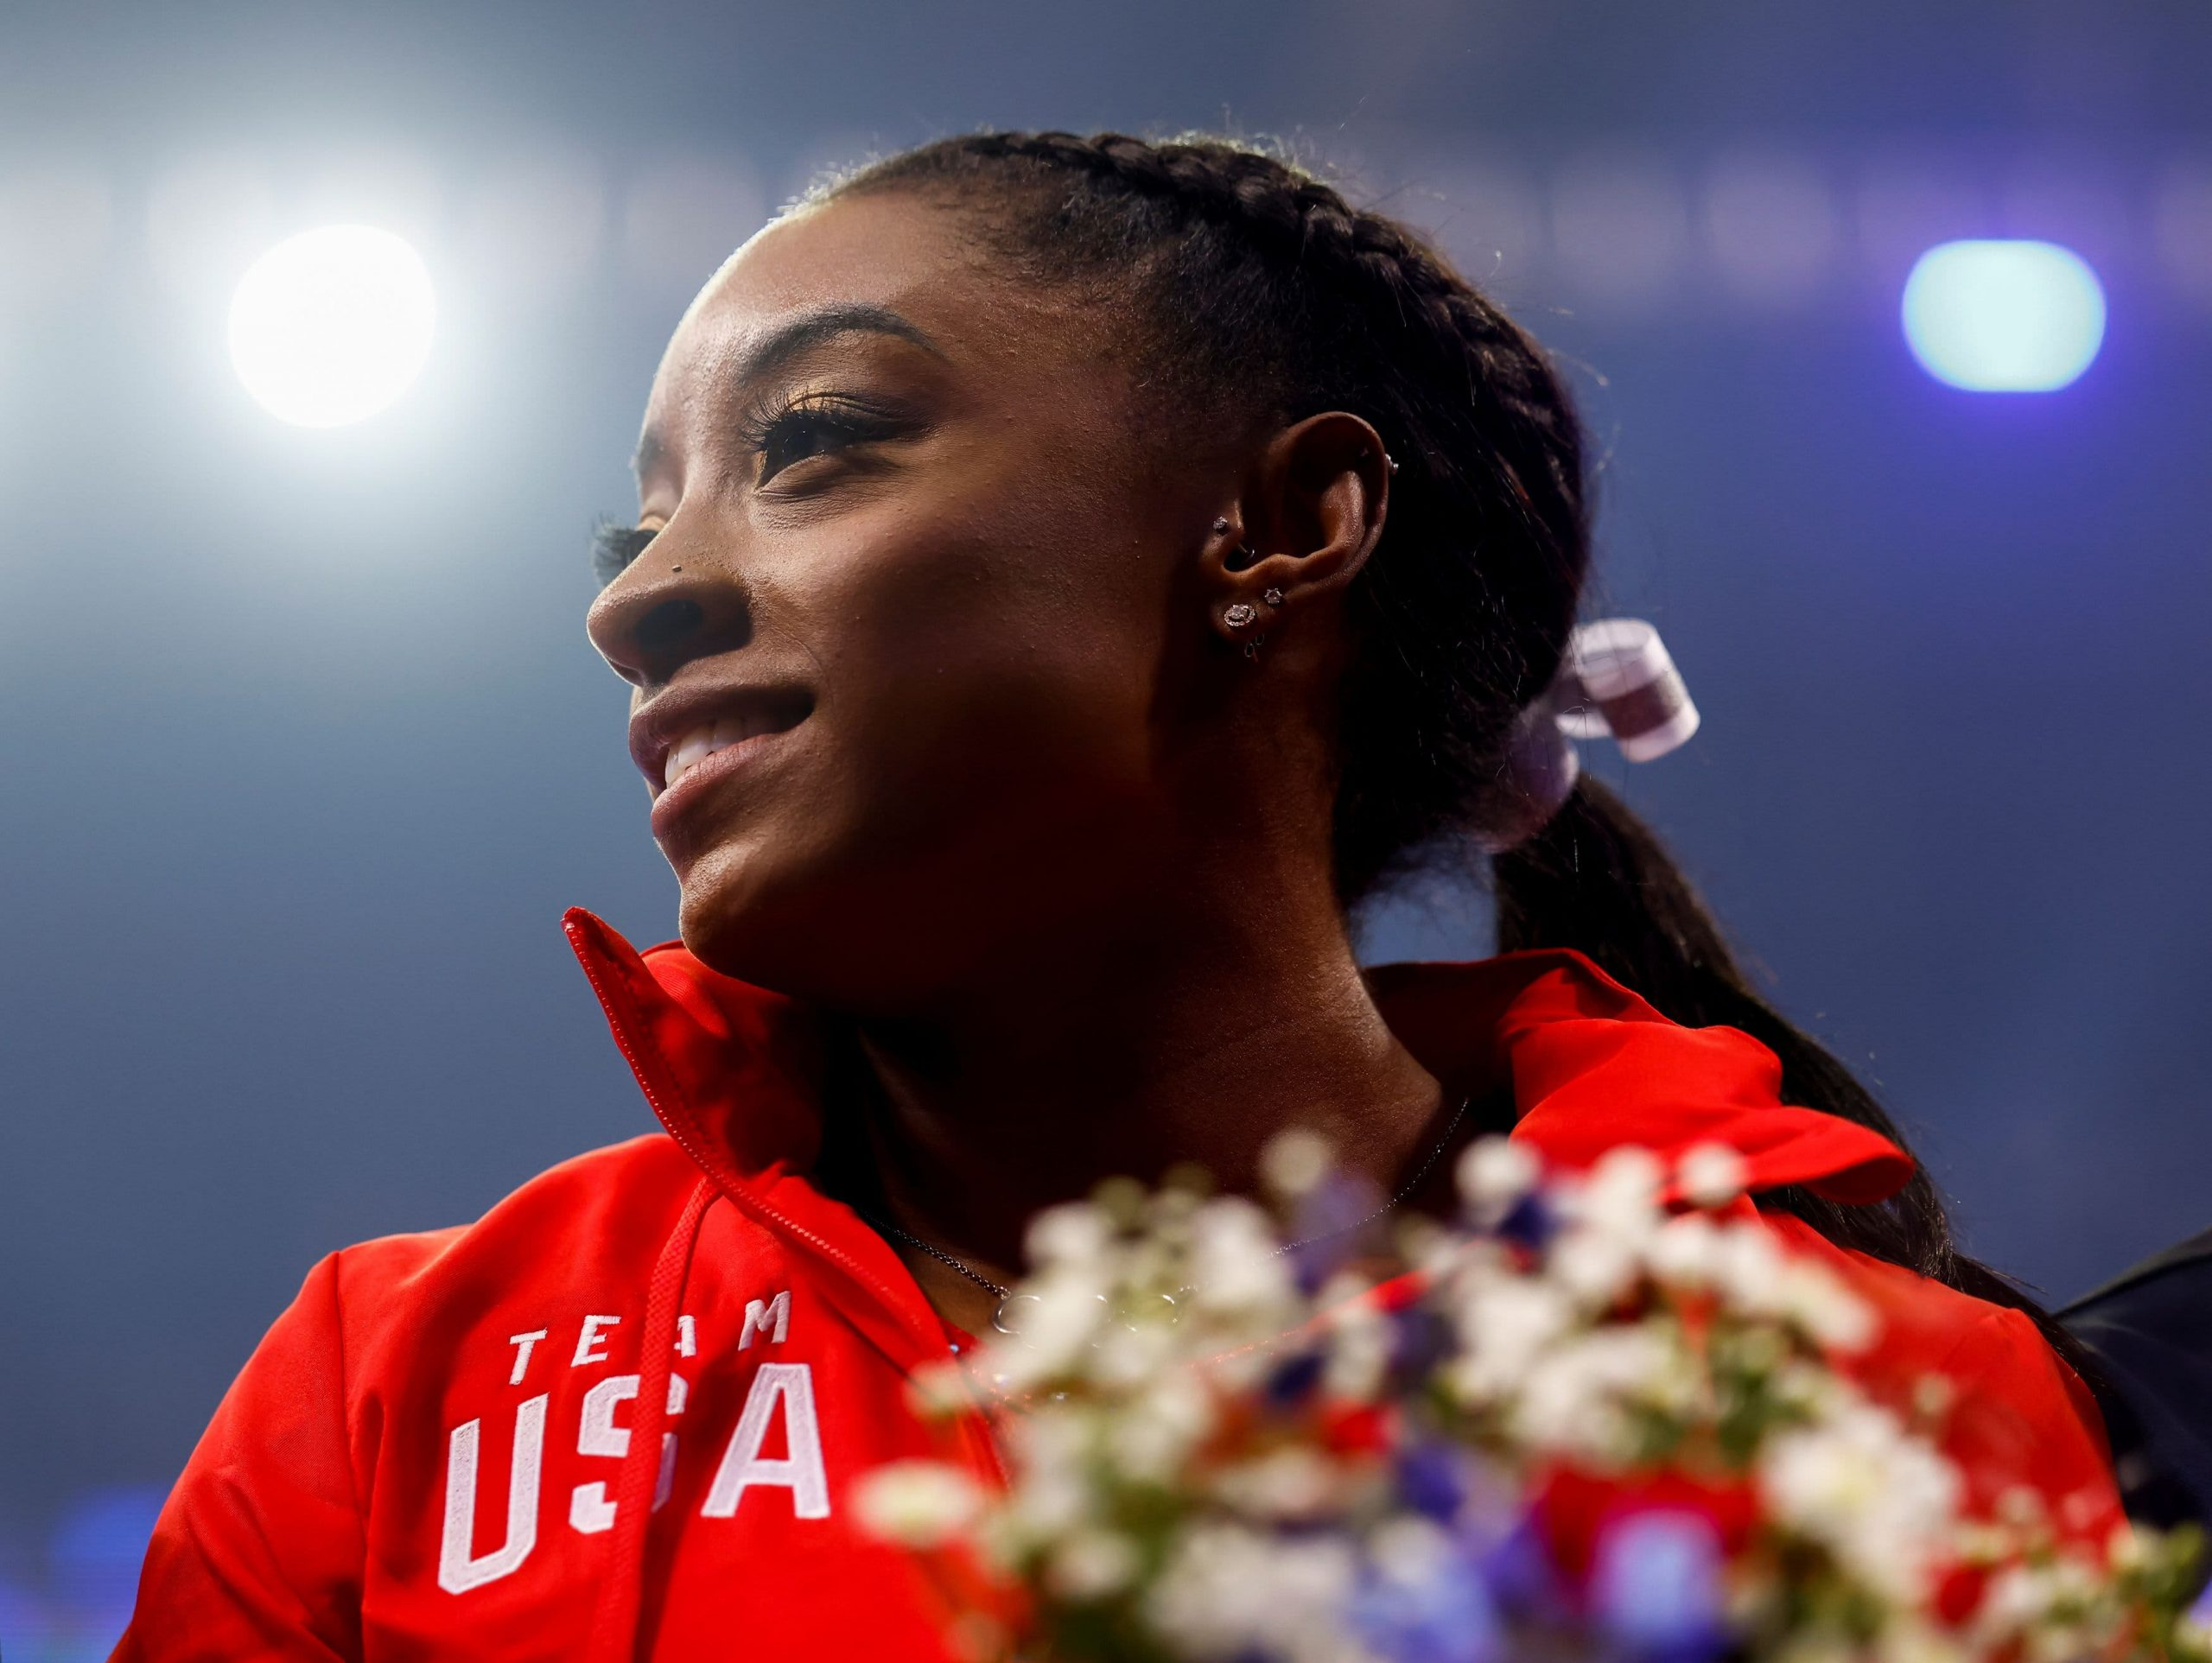 'You better be in the right headspace or really bad things are going to happen': Shannon Miller on Simone Biles's exit